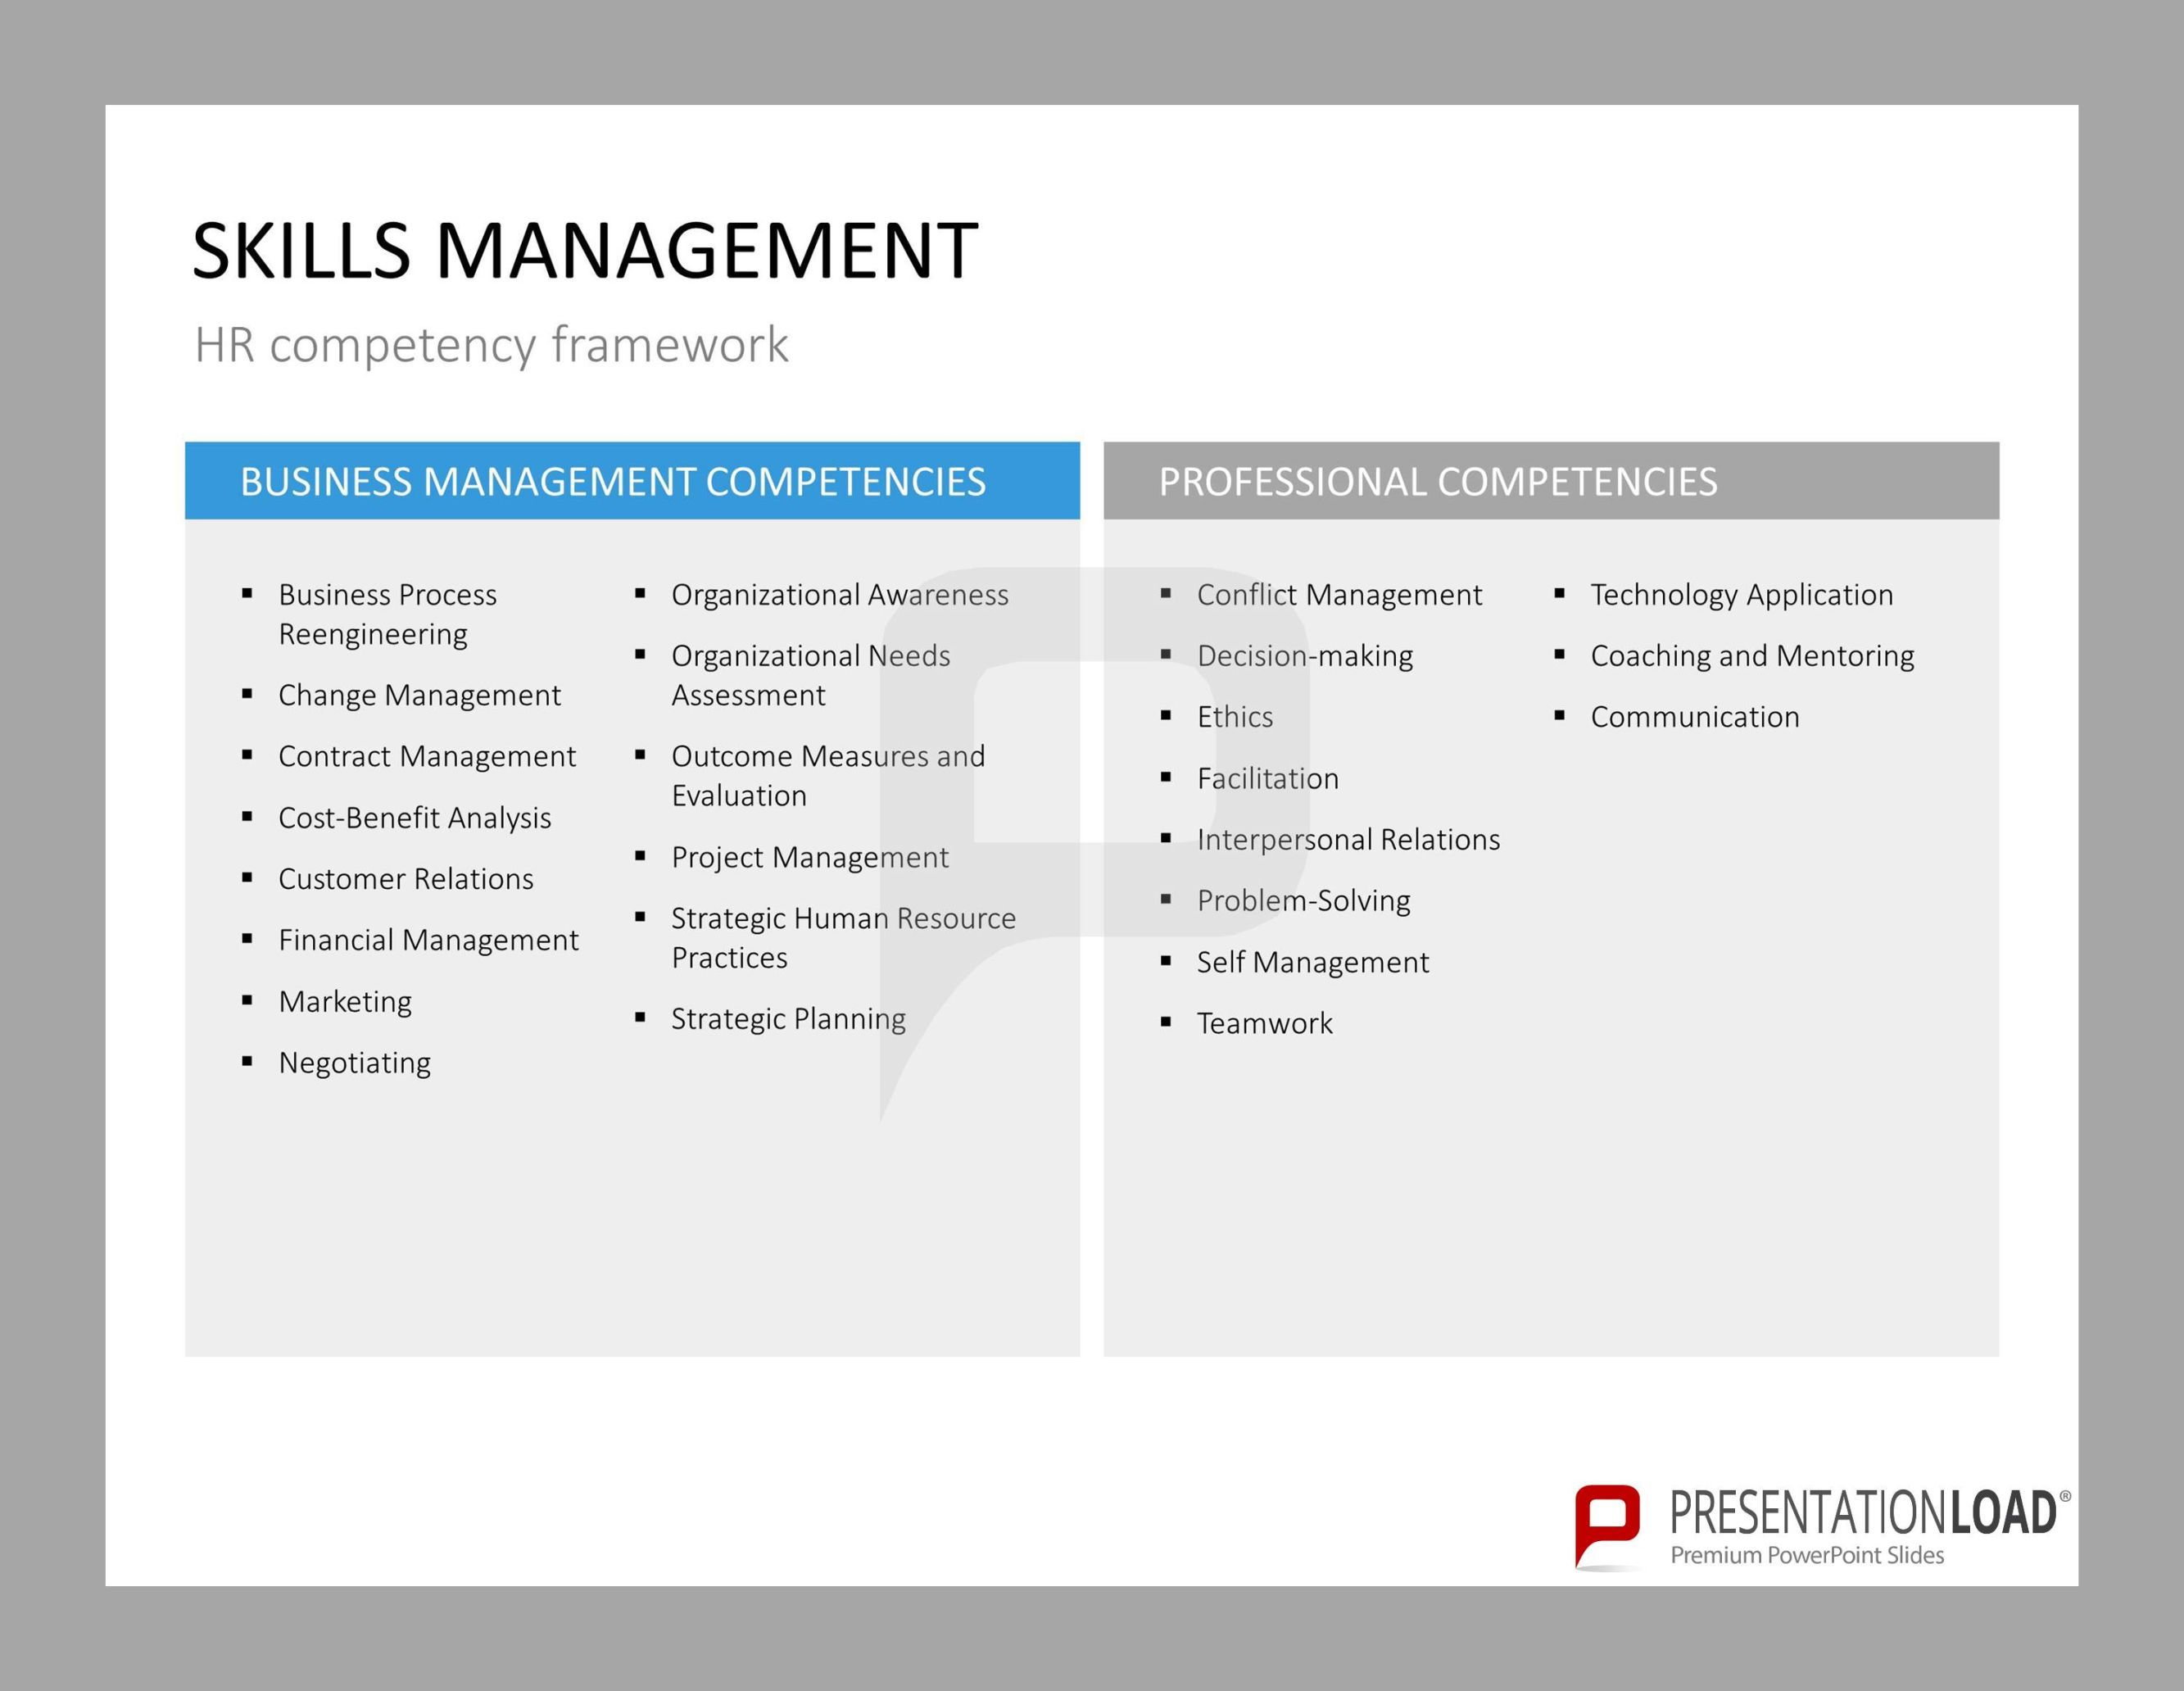 SKILLS MANAGEMENT HR competency framework: BUSINESS MANAGEMENT